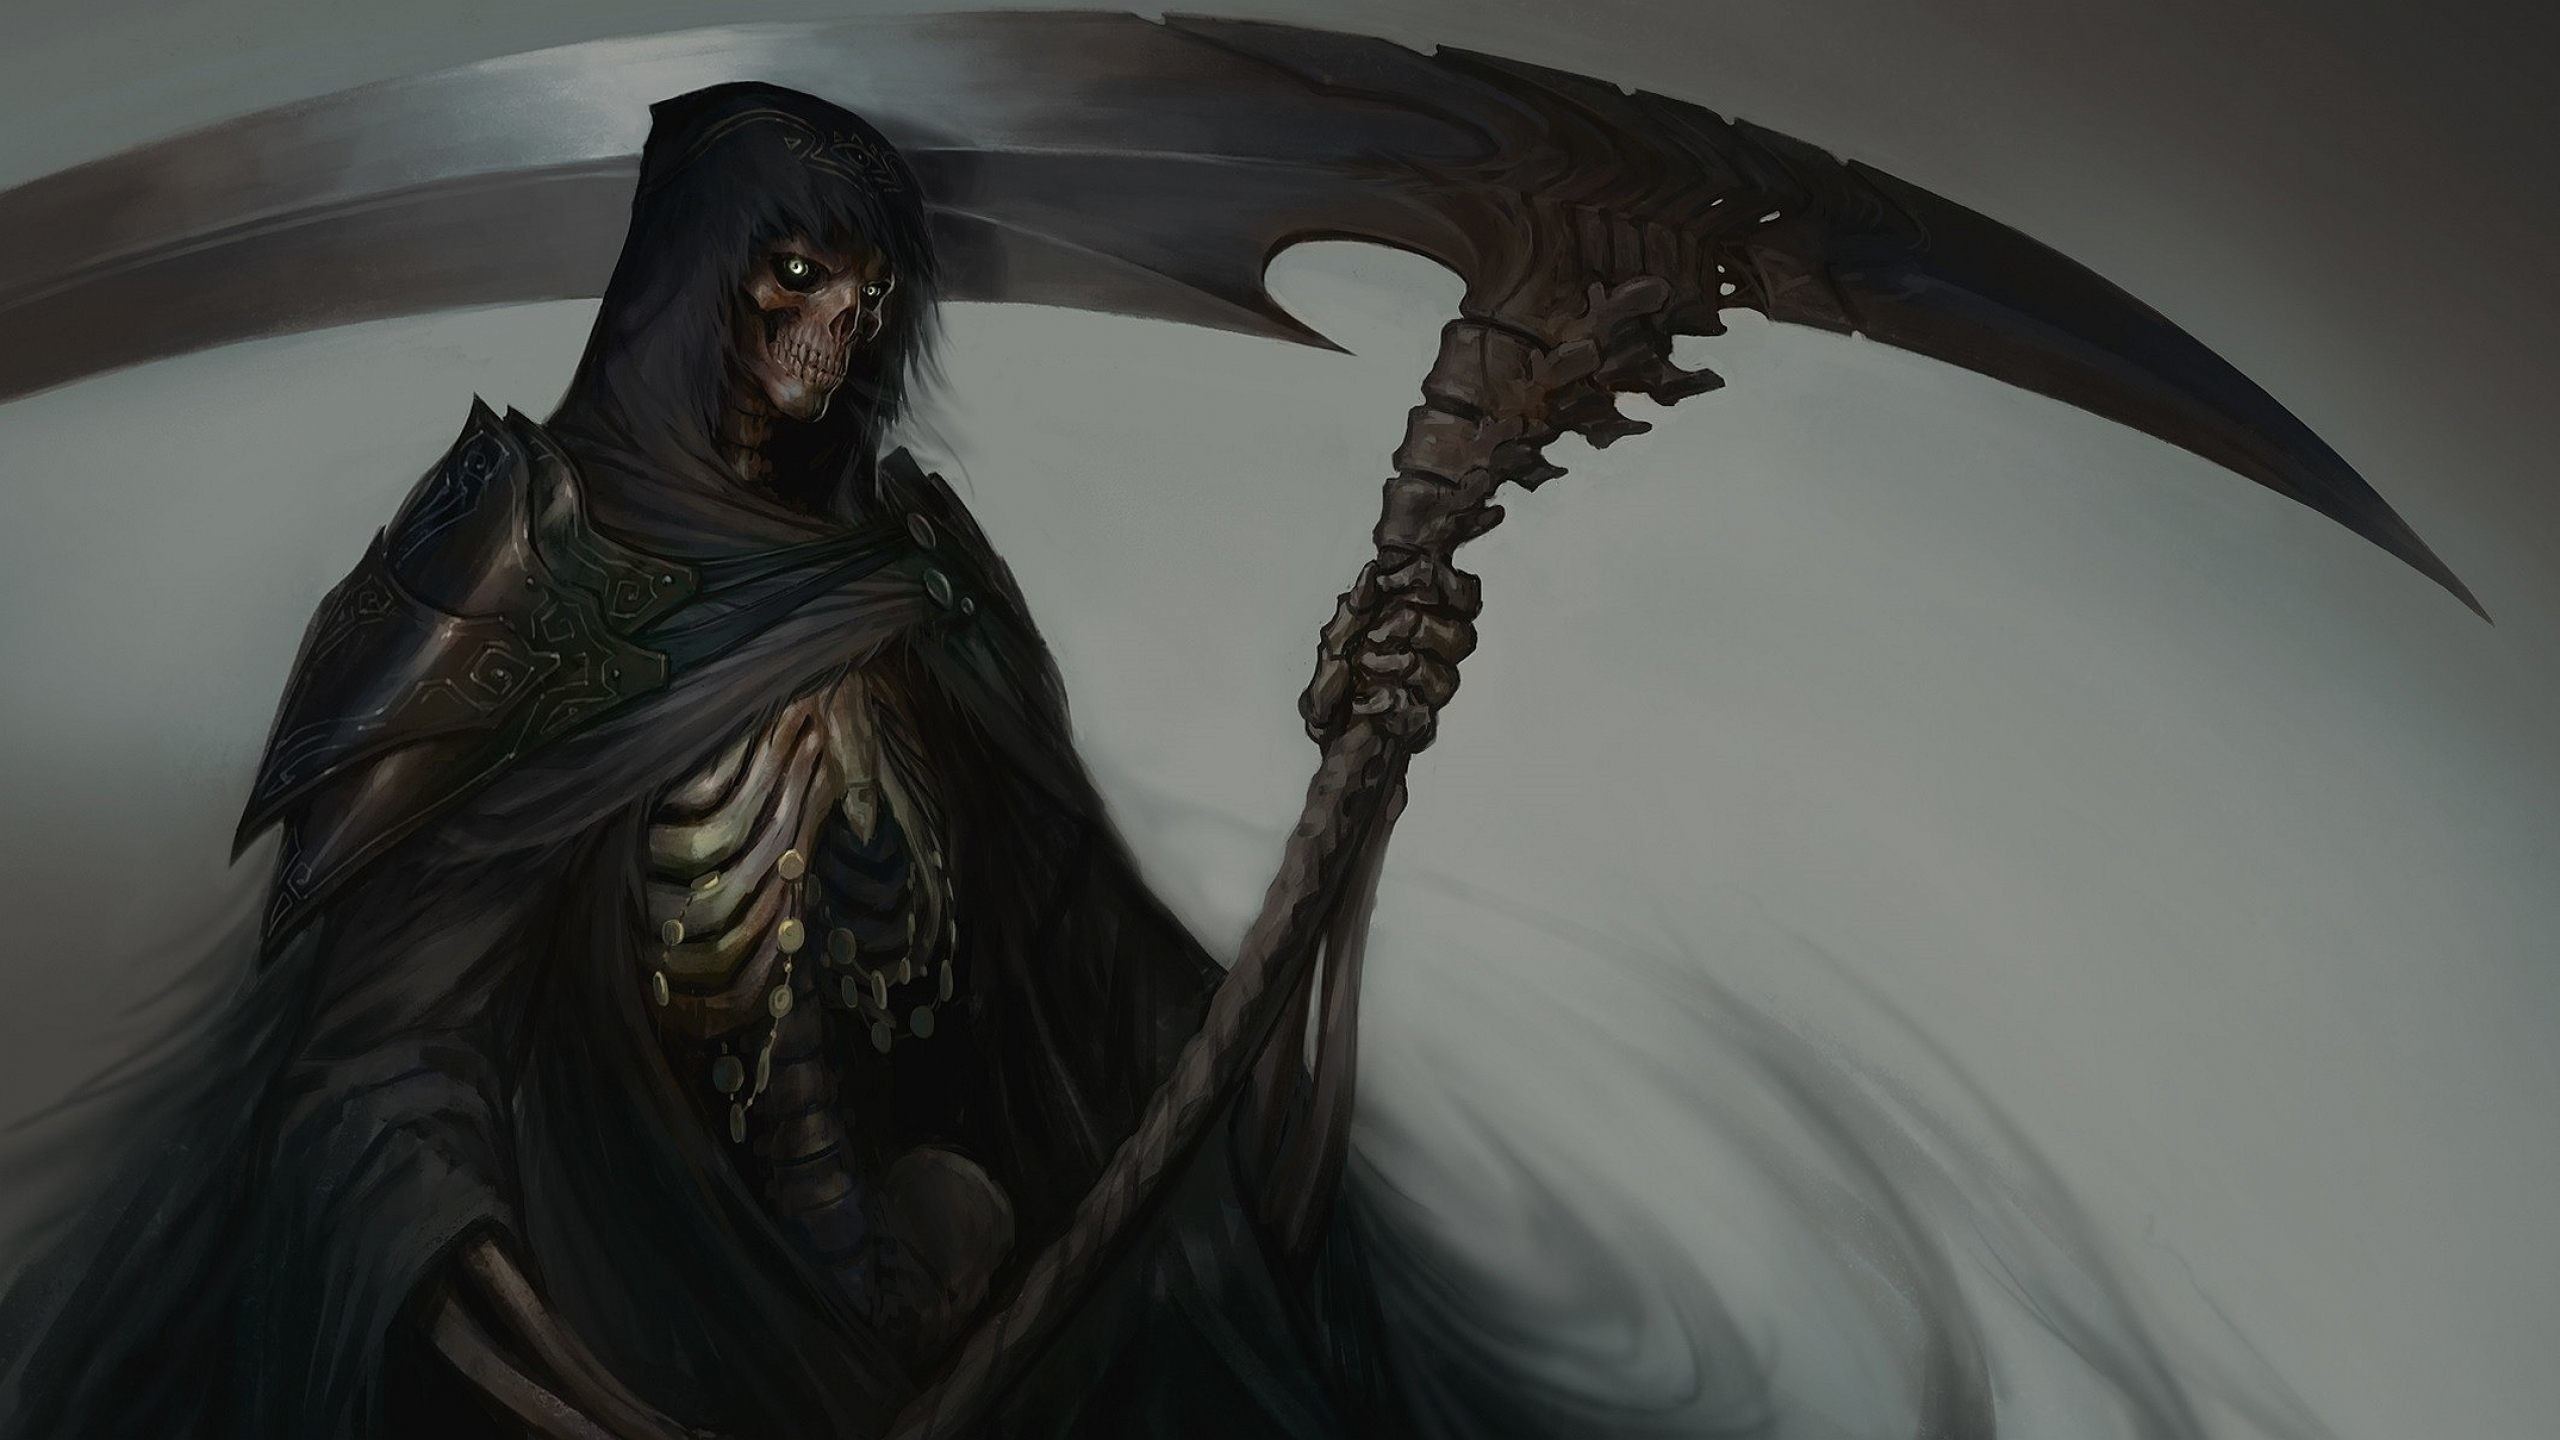 Res: 2560x1440, Grim Reaper On Horse Wallpapers Full Hd